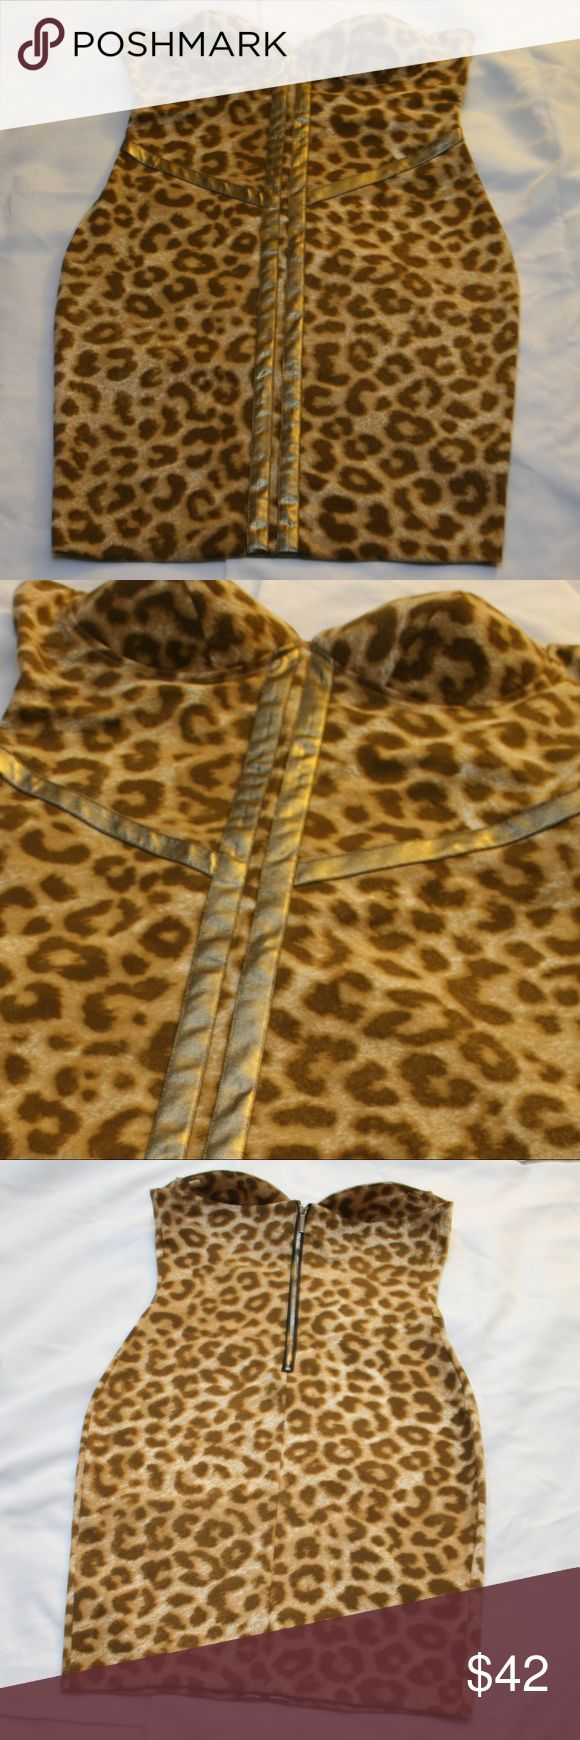 Kardashian Kollection Leopard Convertible Dress L Curve-hugging style and sexy leopard print Kardashian Kollection women's body-con dress. Molded cups and metallic taping will flatter your shape to the max, letting you go bare-shouldered and bold! Removable shoulder straps missing. Sweetheart neckline, molded cups. back zipper closure. Clasp above zipper missing. All shown in photos.   Hemline: 31 in. from the neckline Fabric: 96% polyester, 4% elastane Kardashian Kollection Dresses…